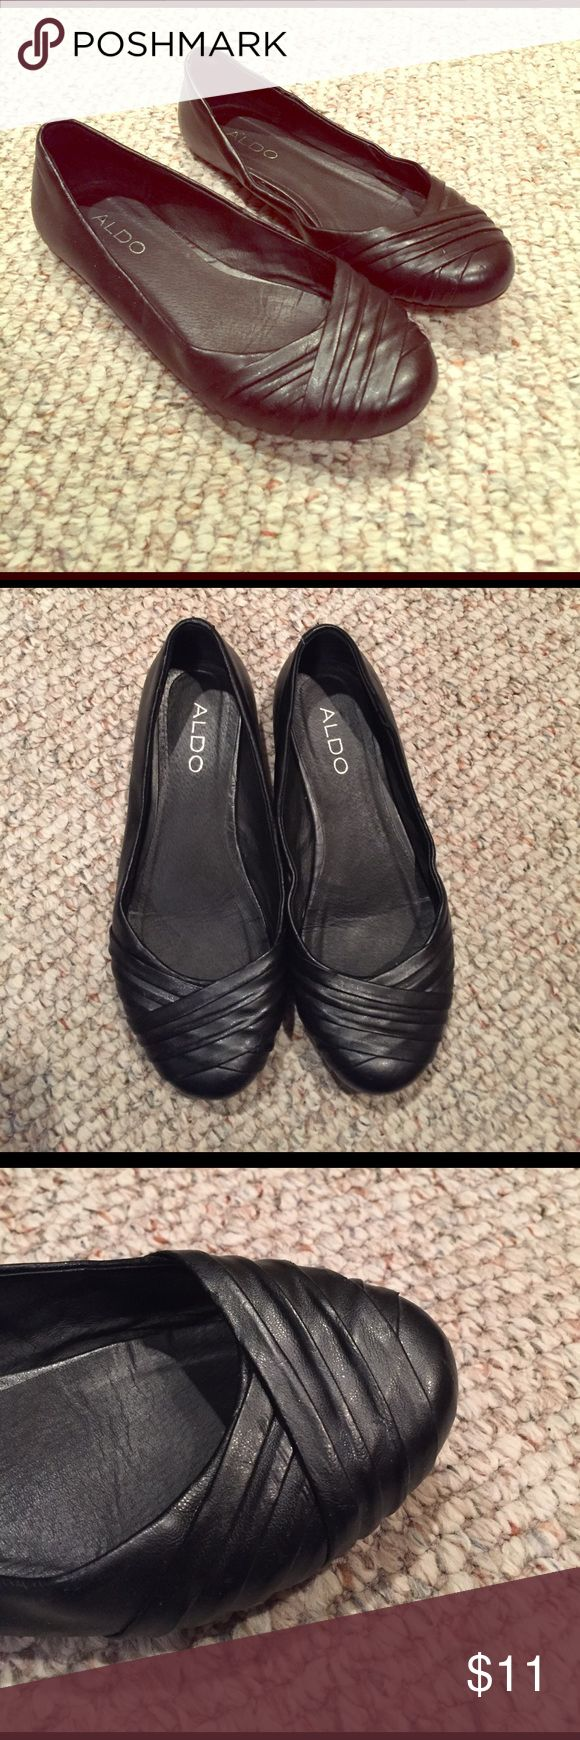 Aldo black leather flats Black leather flats with cross-crossing fabric across the toes from Aldo. These have been worn a bit- take a look at the soles. The tops of the shoes are still in great condition and they are very comfortable to wear. They don't hurt your toes or rub your heels the wrong way when wearing them. Aldo Shoes Flats & Loafers